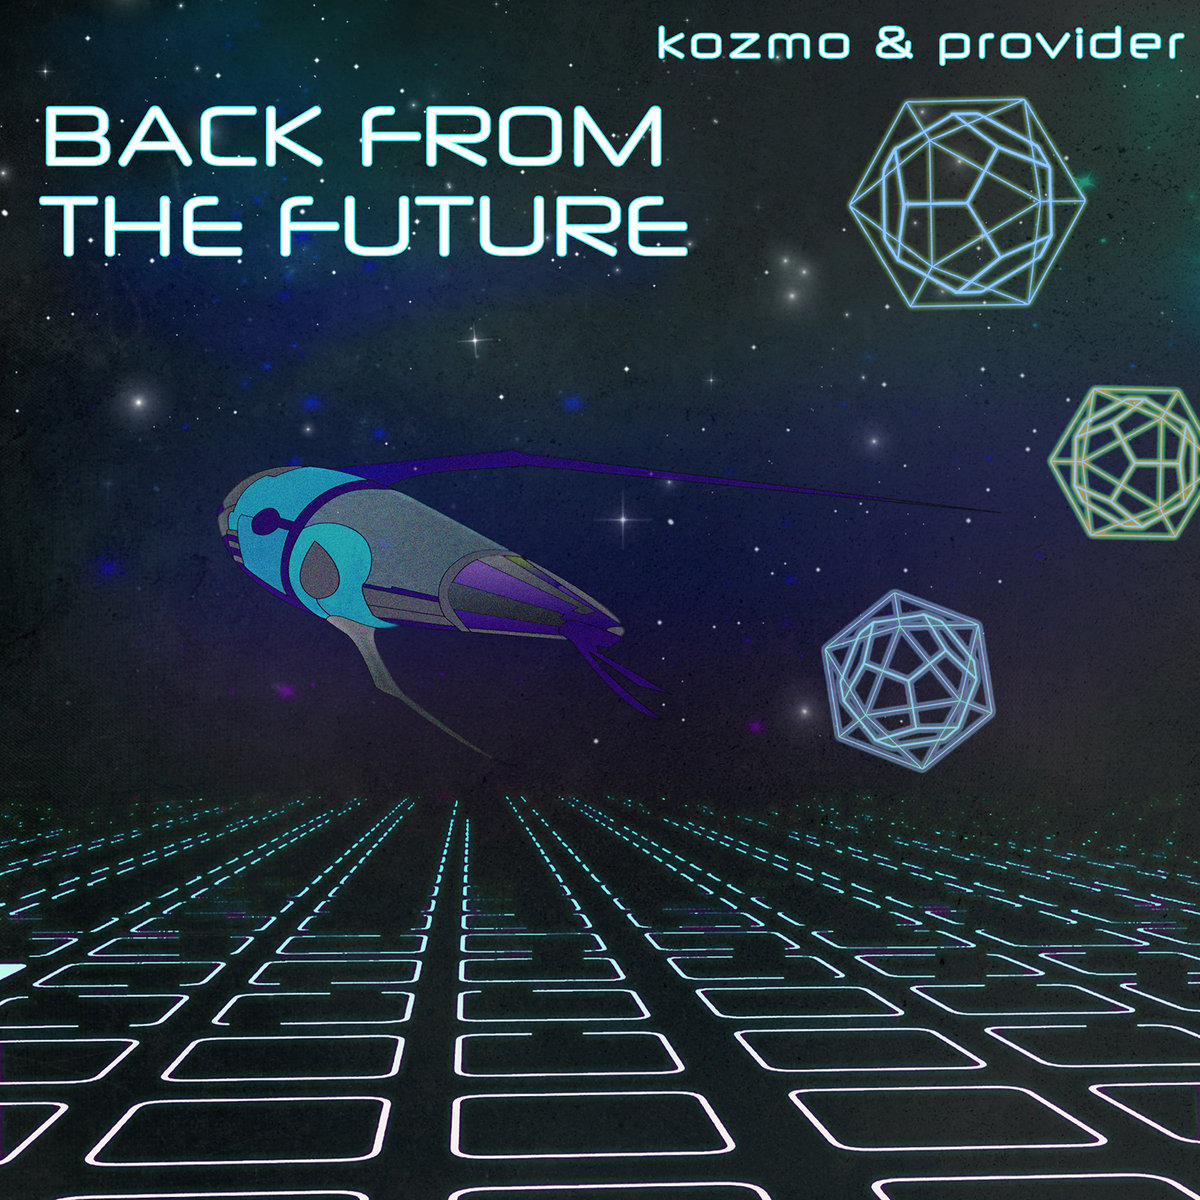 KOZMO & Provider - Back From the Future @ 'Back From the Future' album (electronic, dubstep)